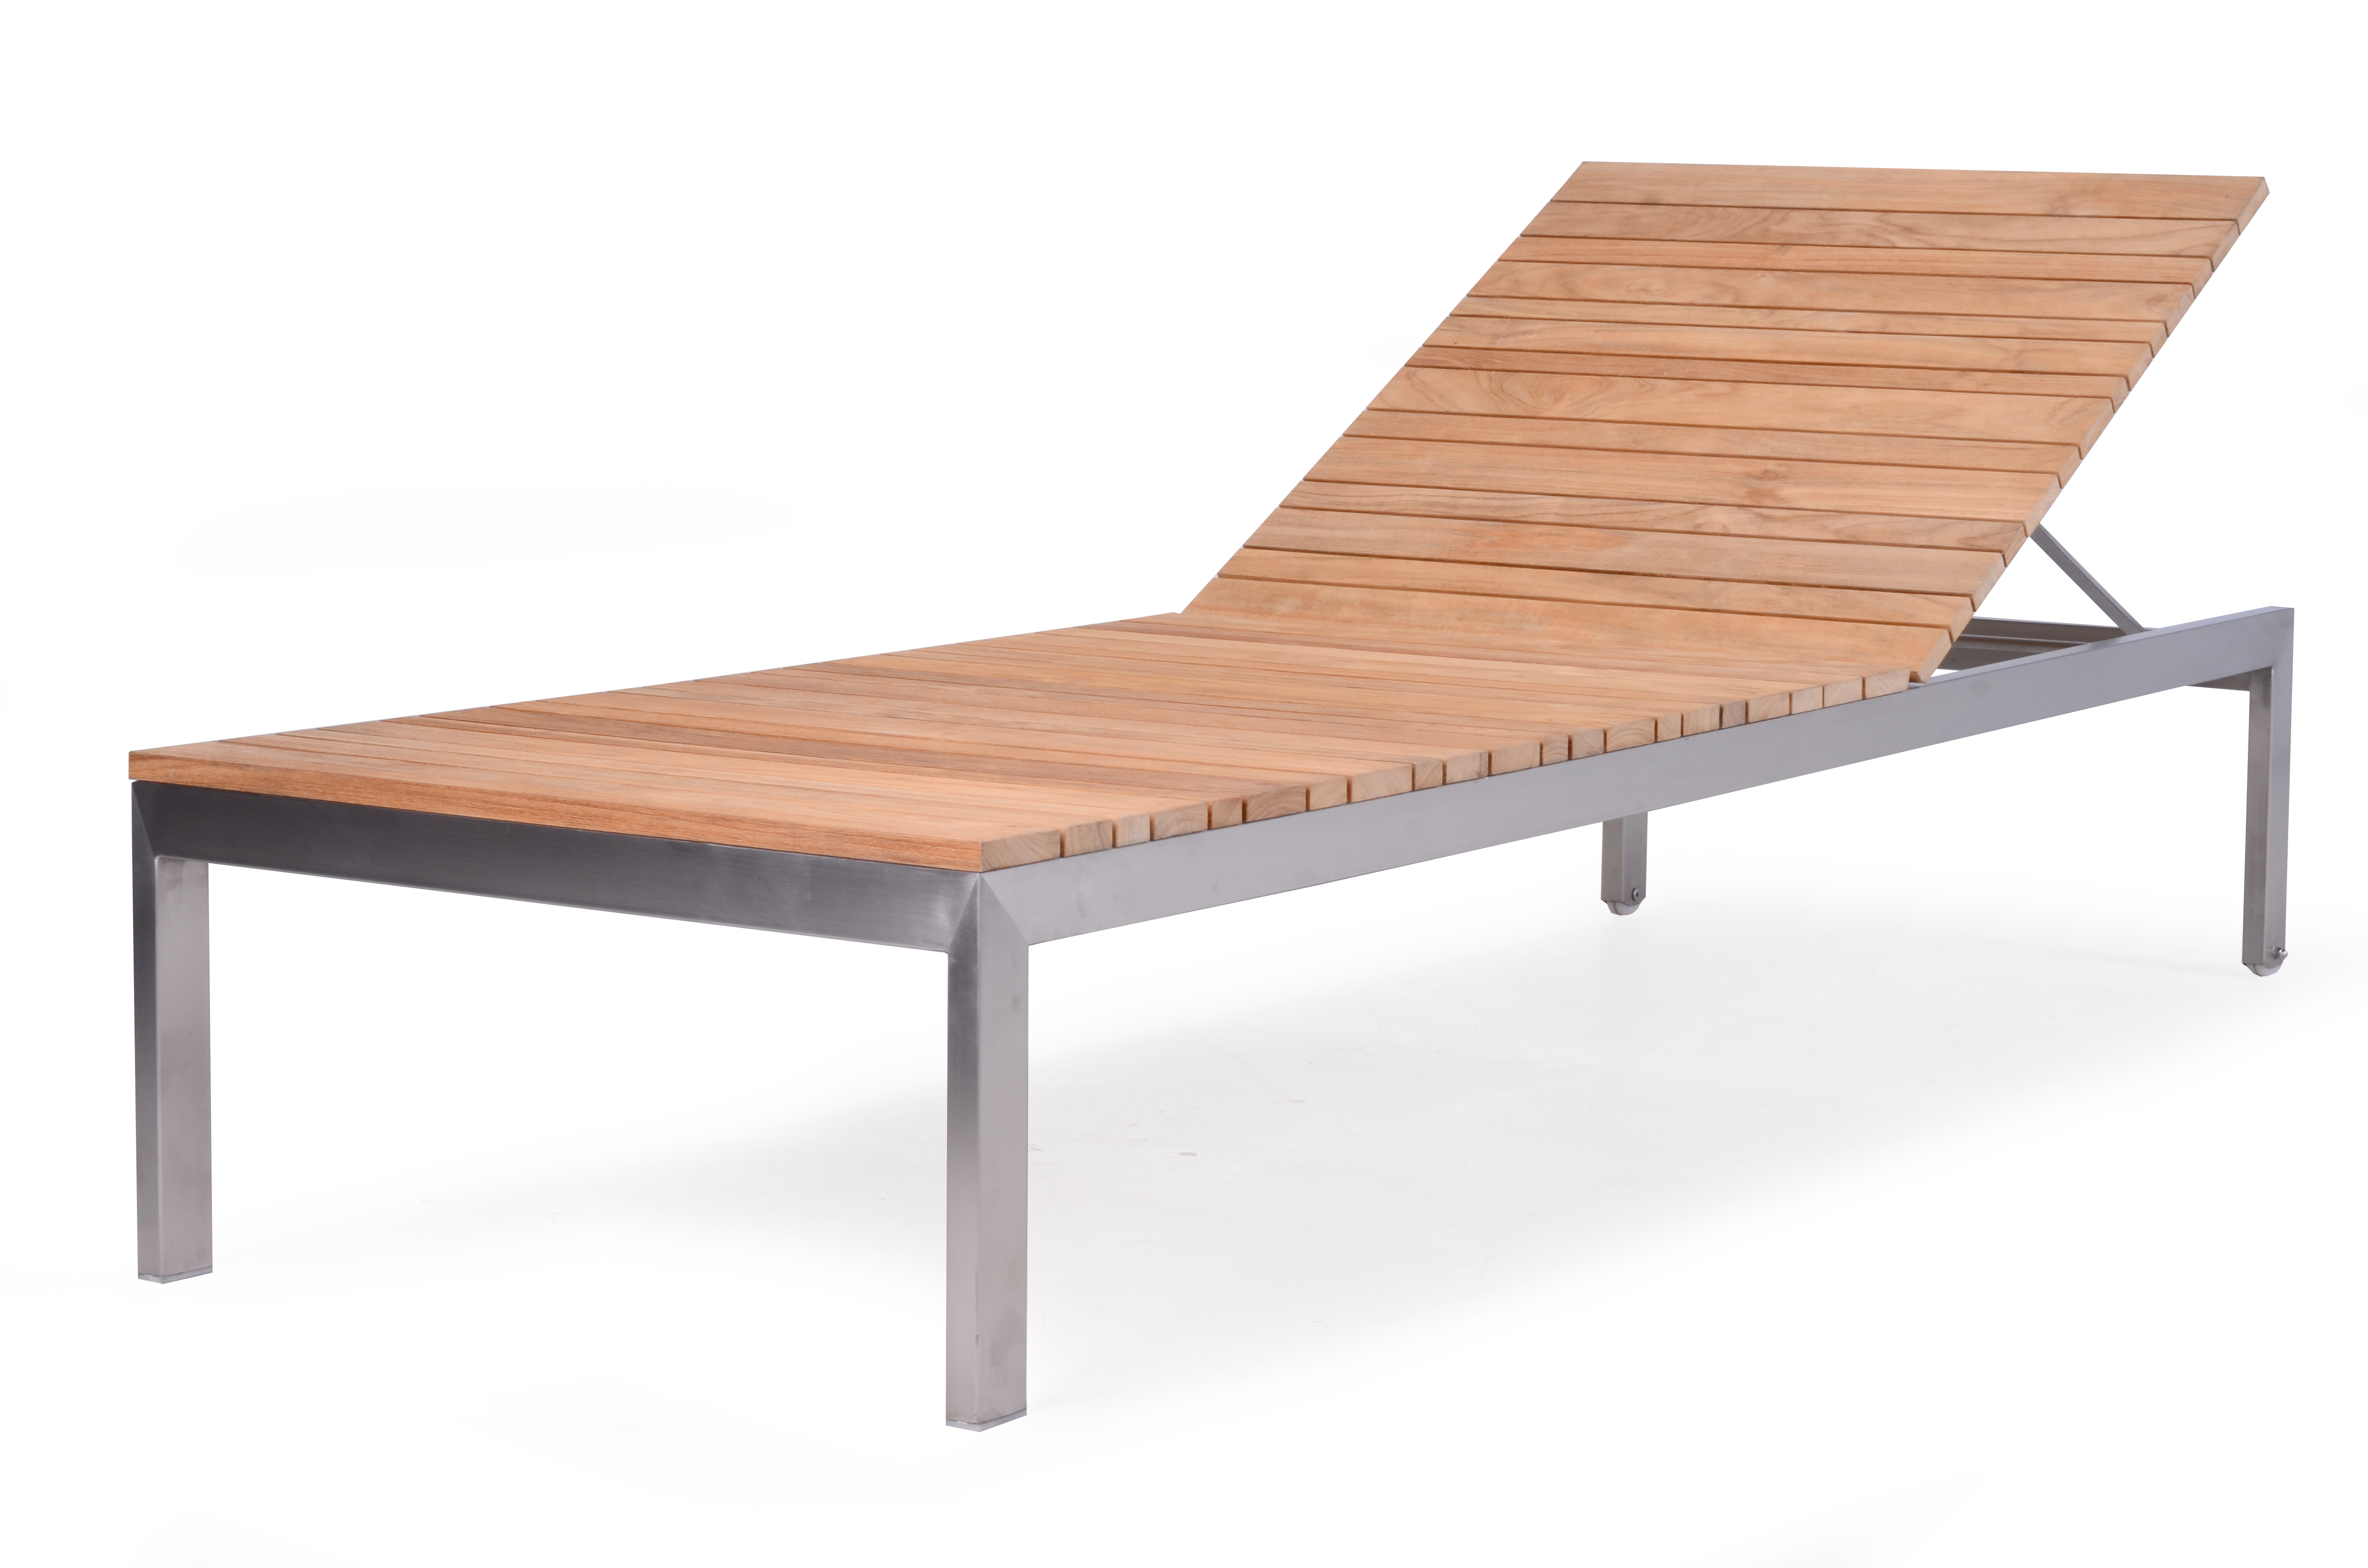 Premier chaise lounger couture outdoor for Chaise 1er prix